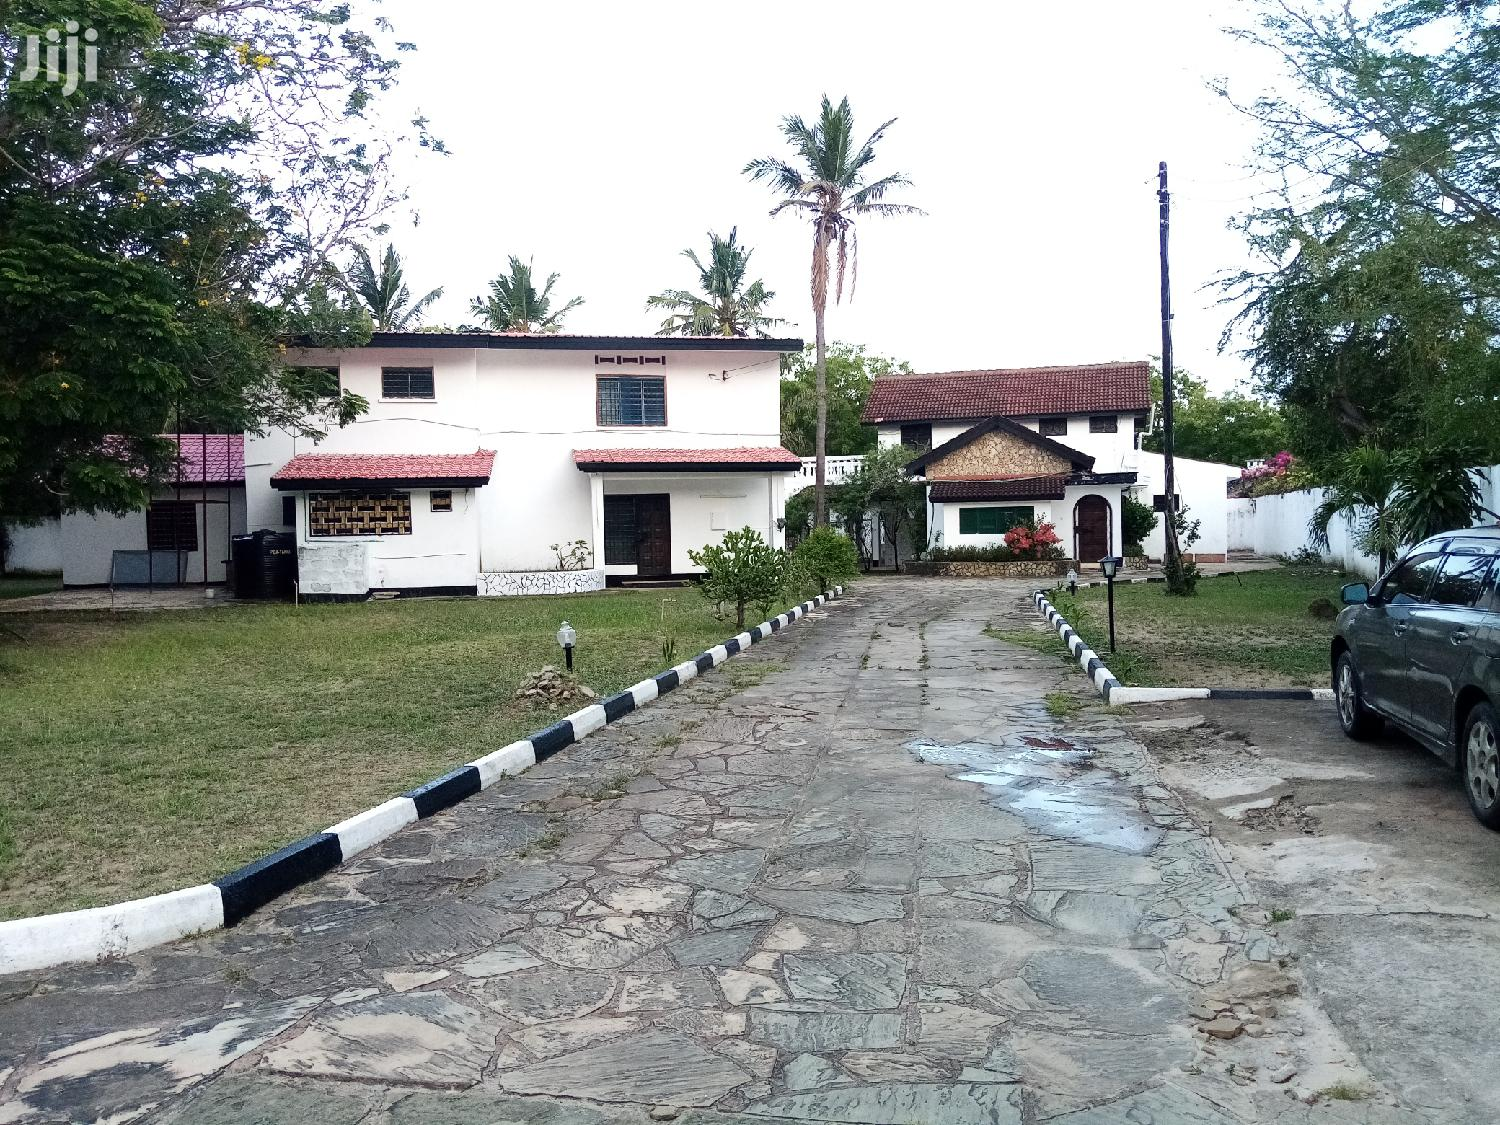 Own Compound 4 Bedroom And 3 Bedroom Masionatte In One Comp